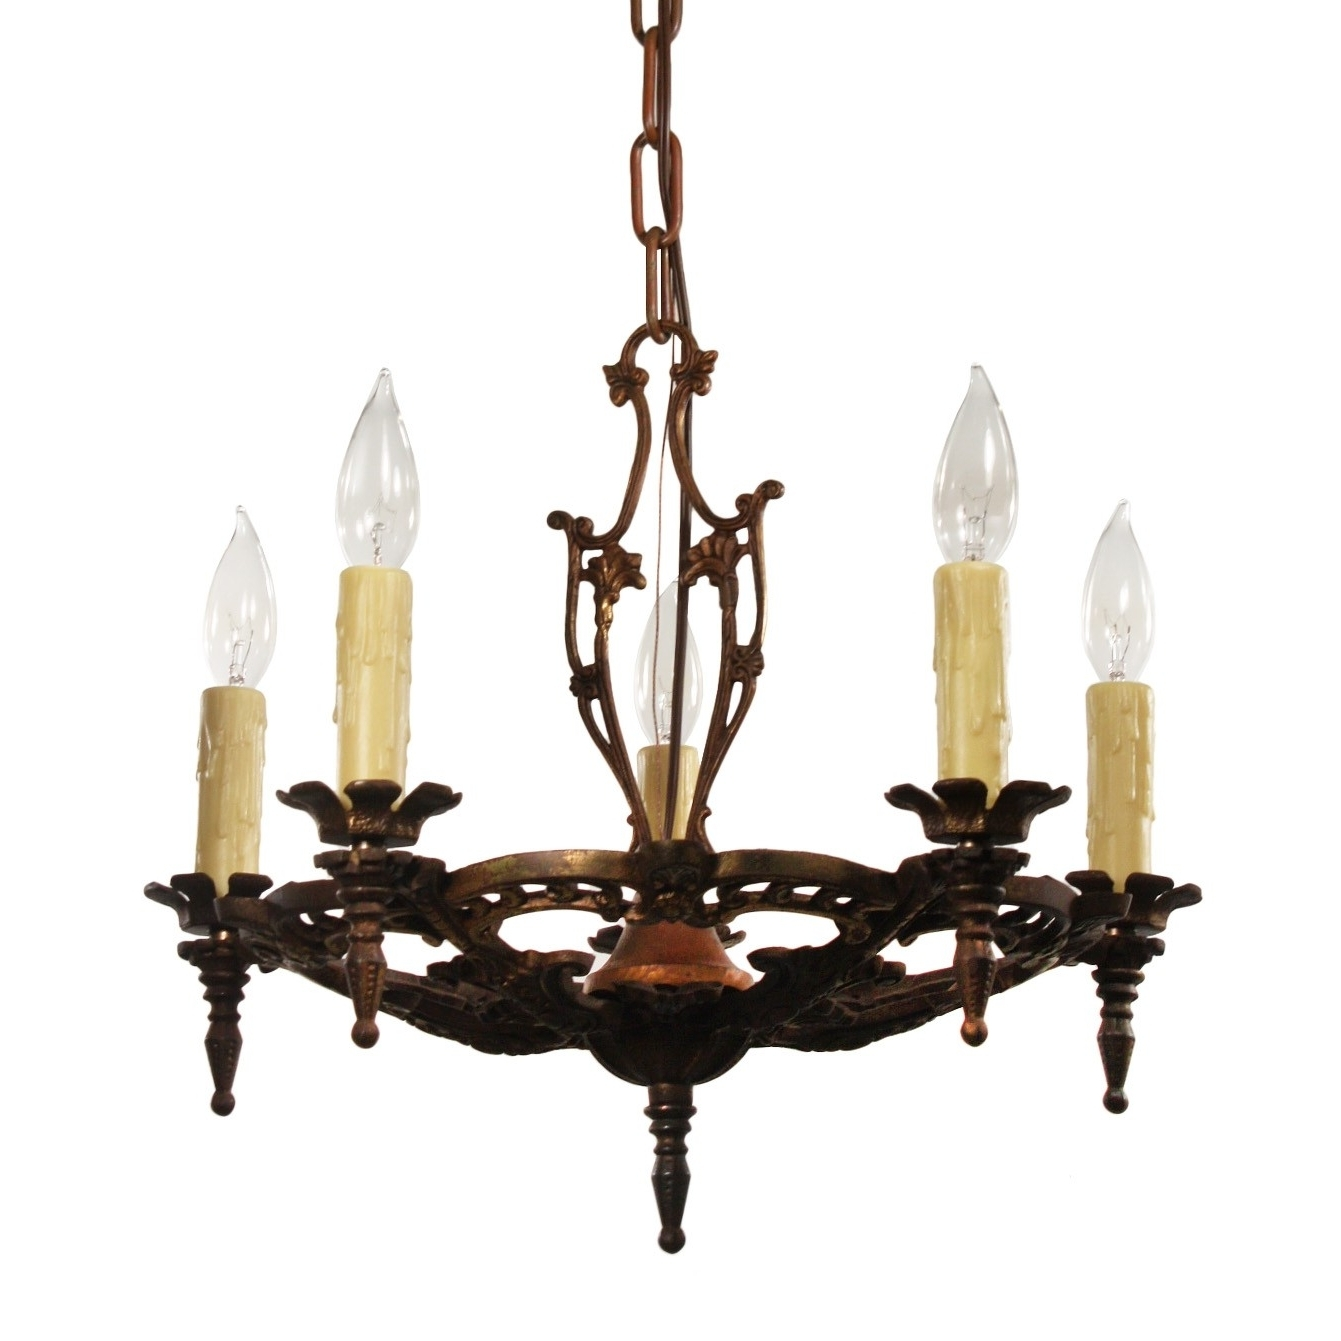 Well Known Antique Chandelier In Cast Iron, Antique Lighting – Preservation With Cast Iron Antique Chandelier (View 8 of 20)